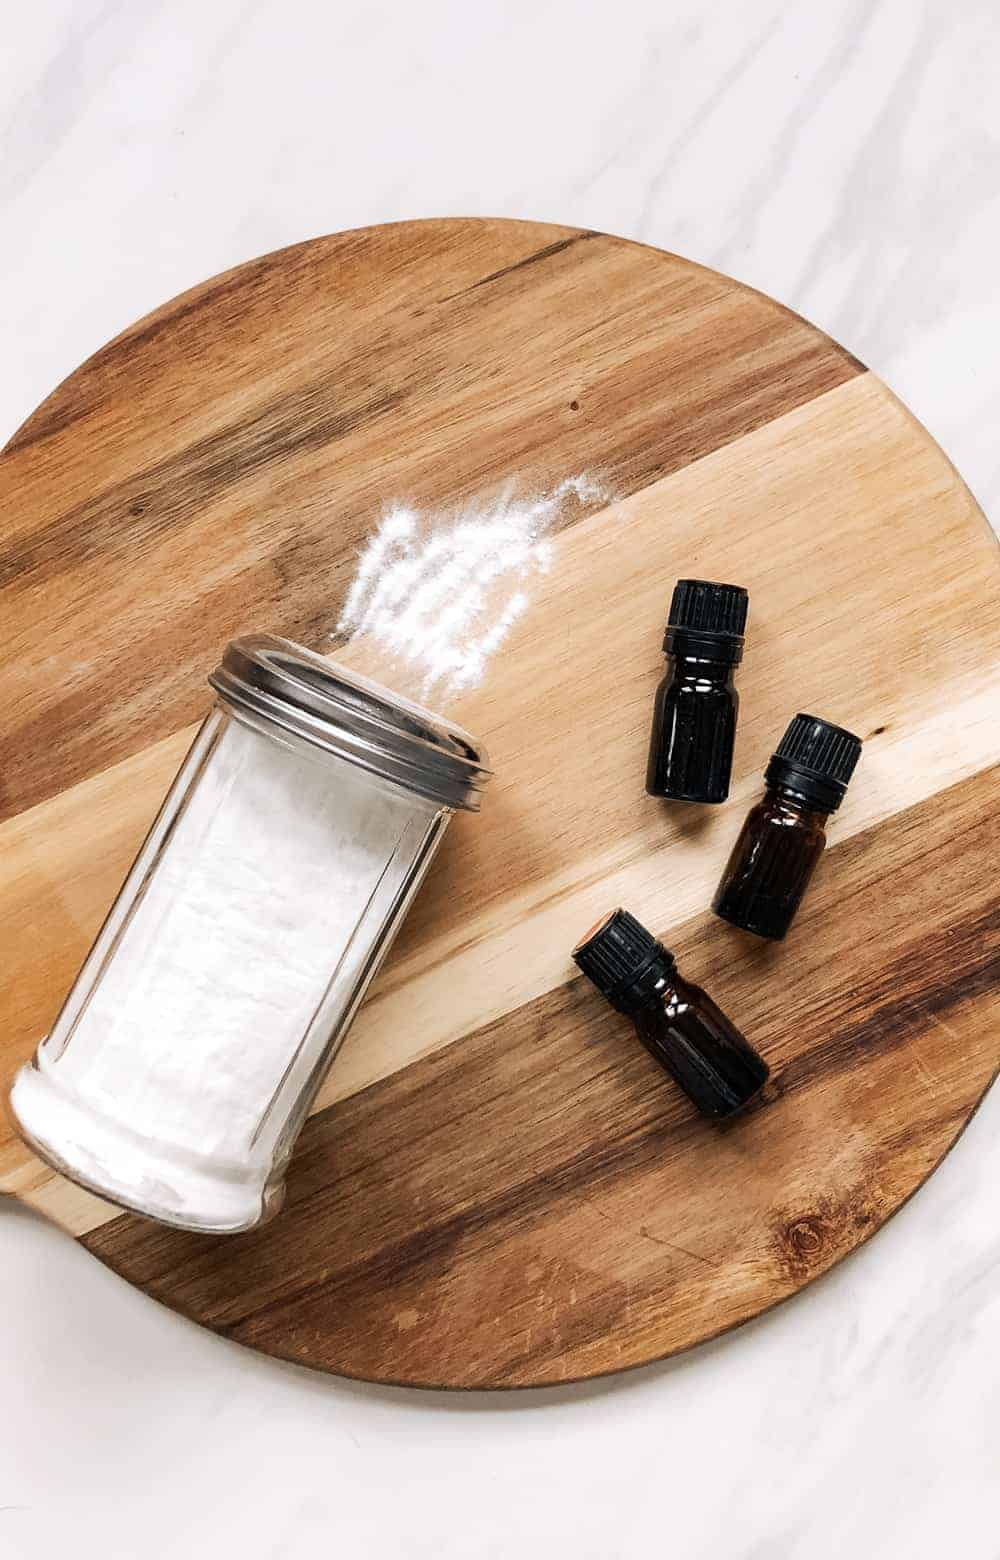 DIY Carpet Deodorizer with Essential Oils